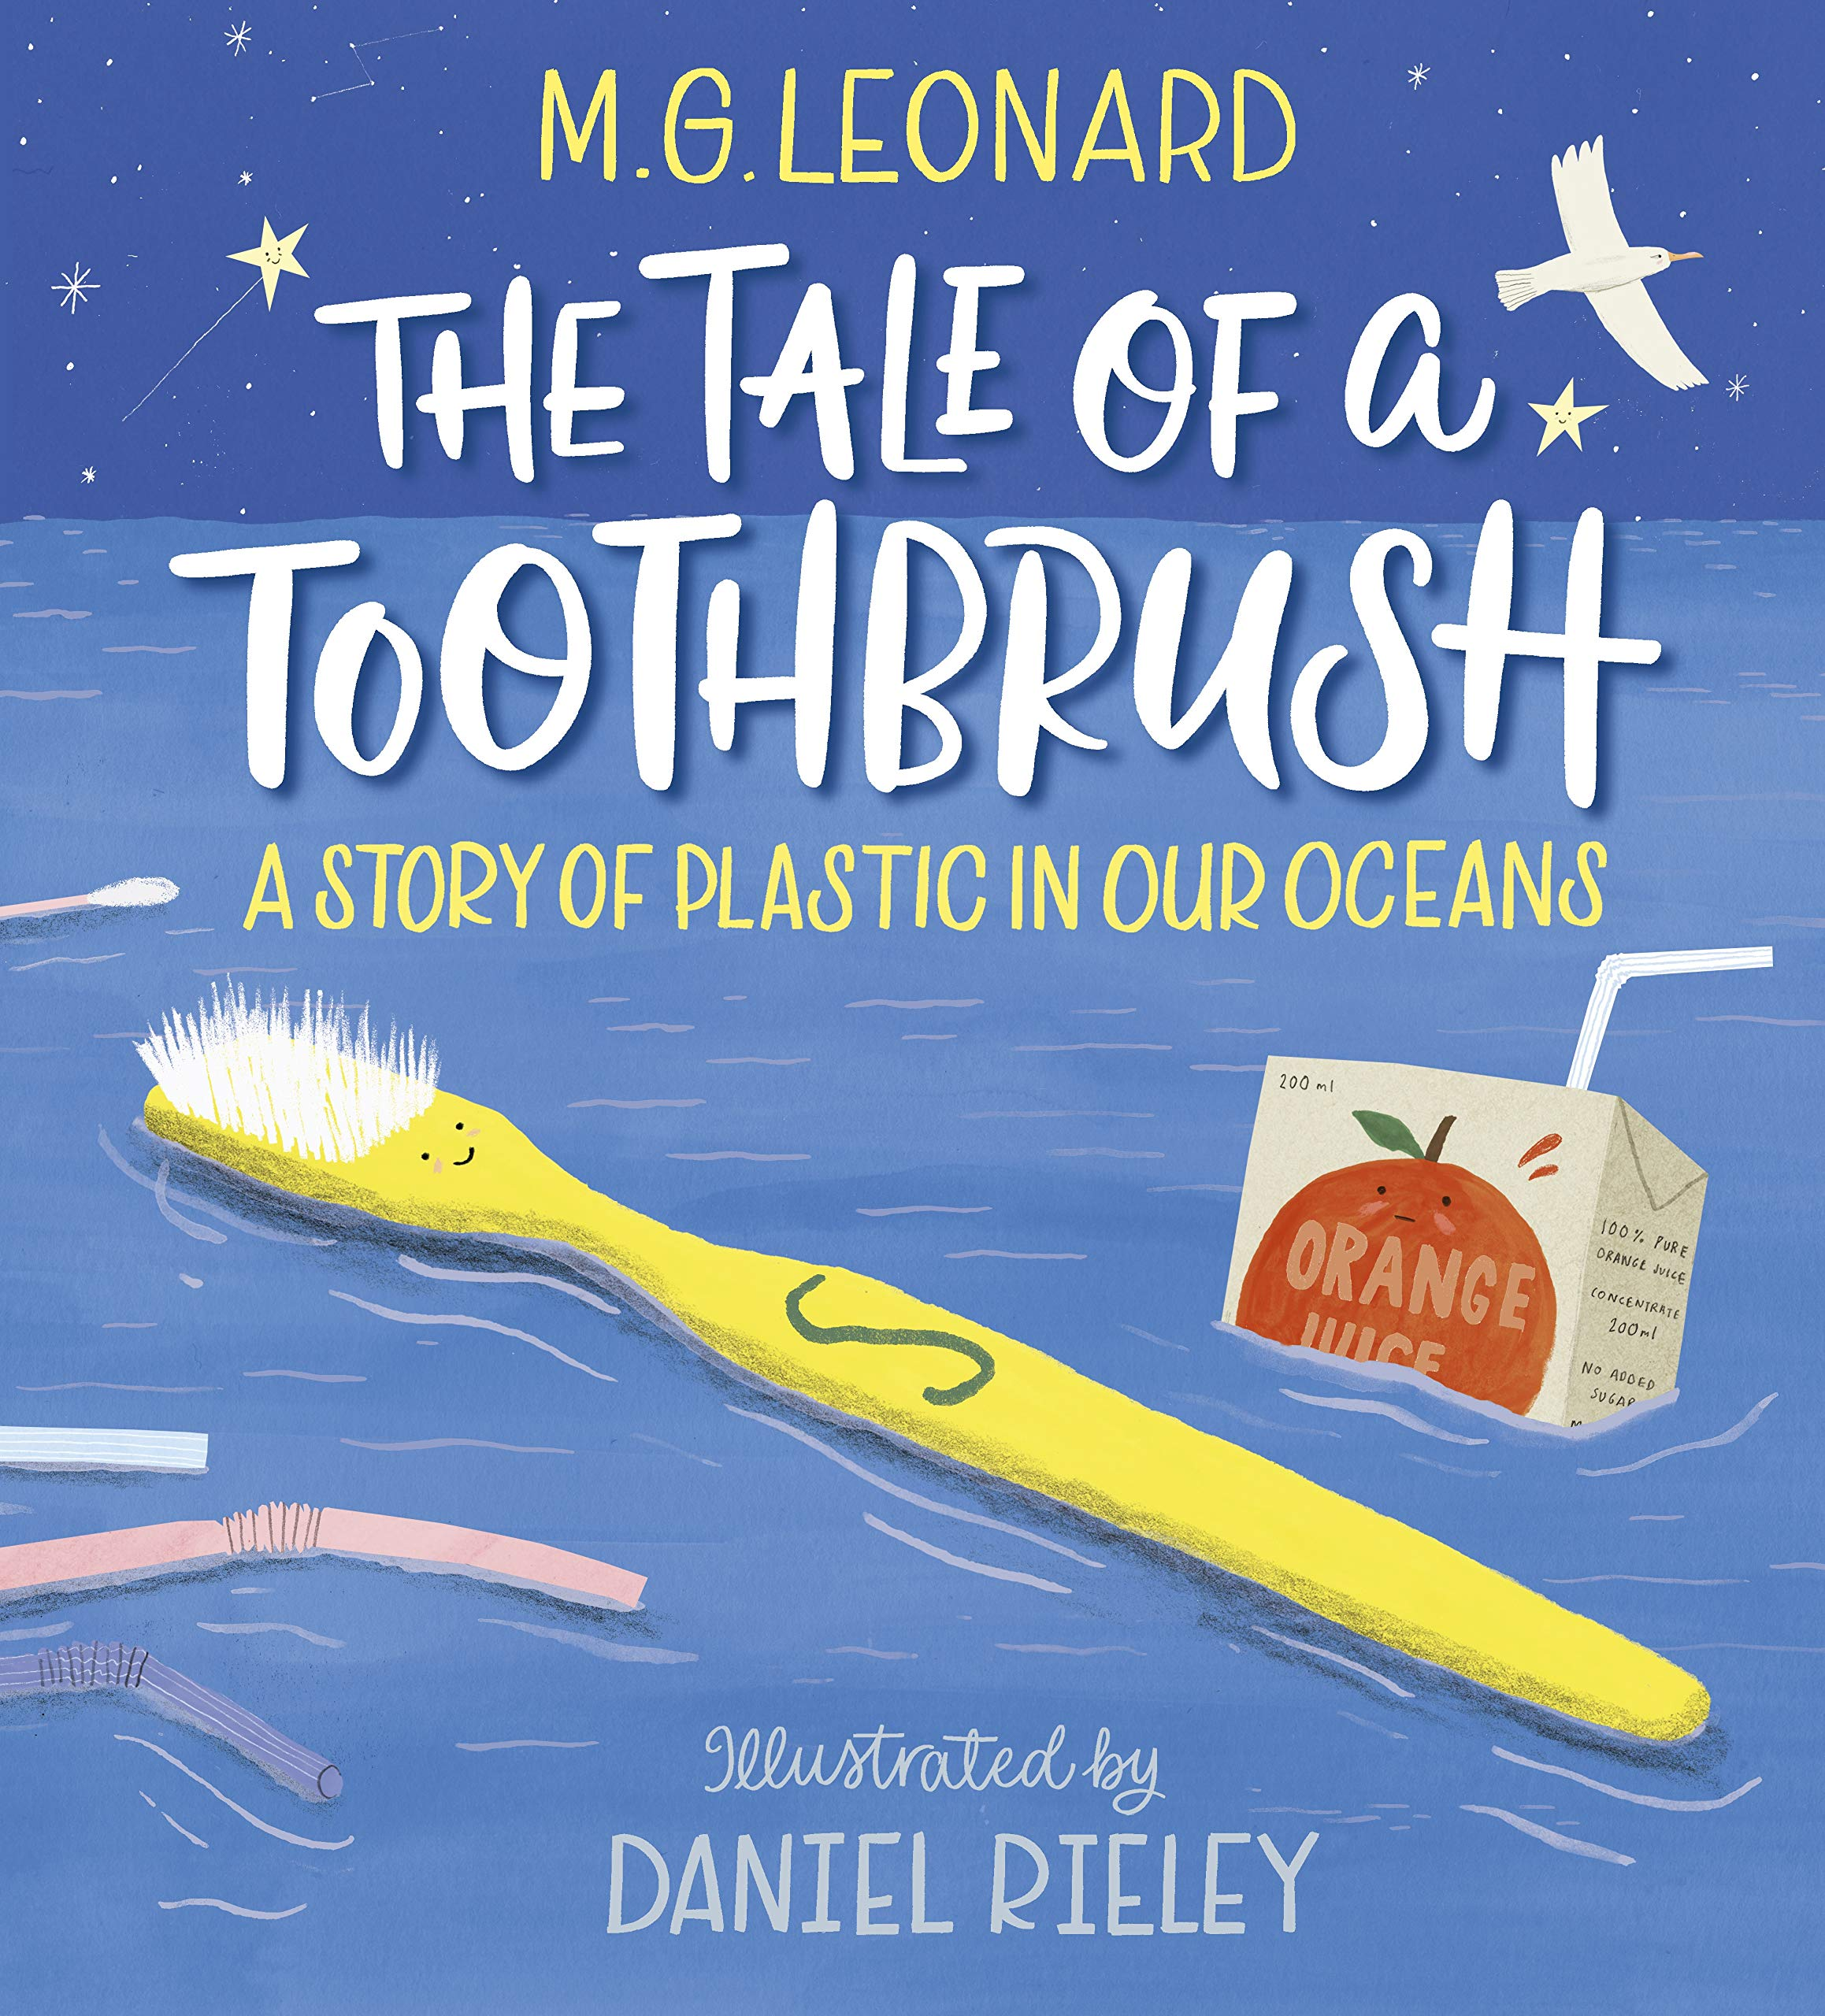 The Tale of a Toothbrush: A Story of Plastic in Our Oceans ...